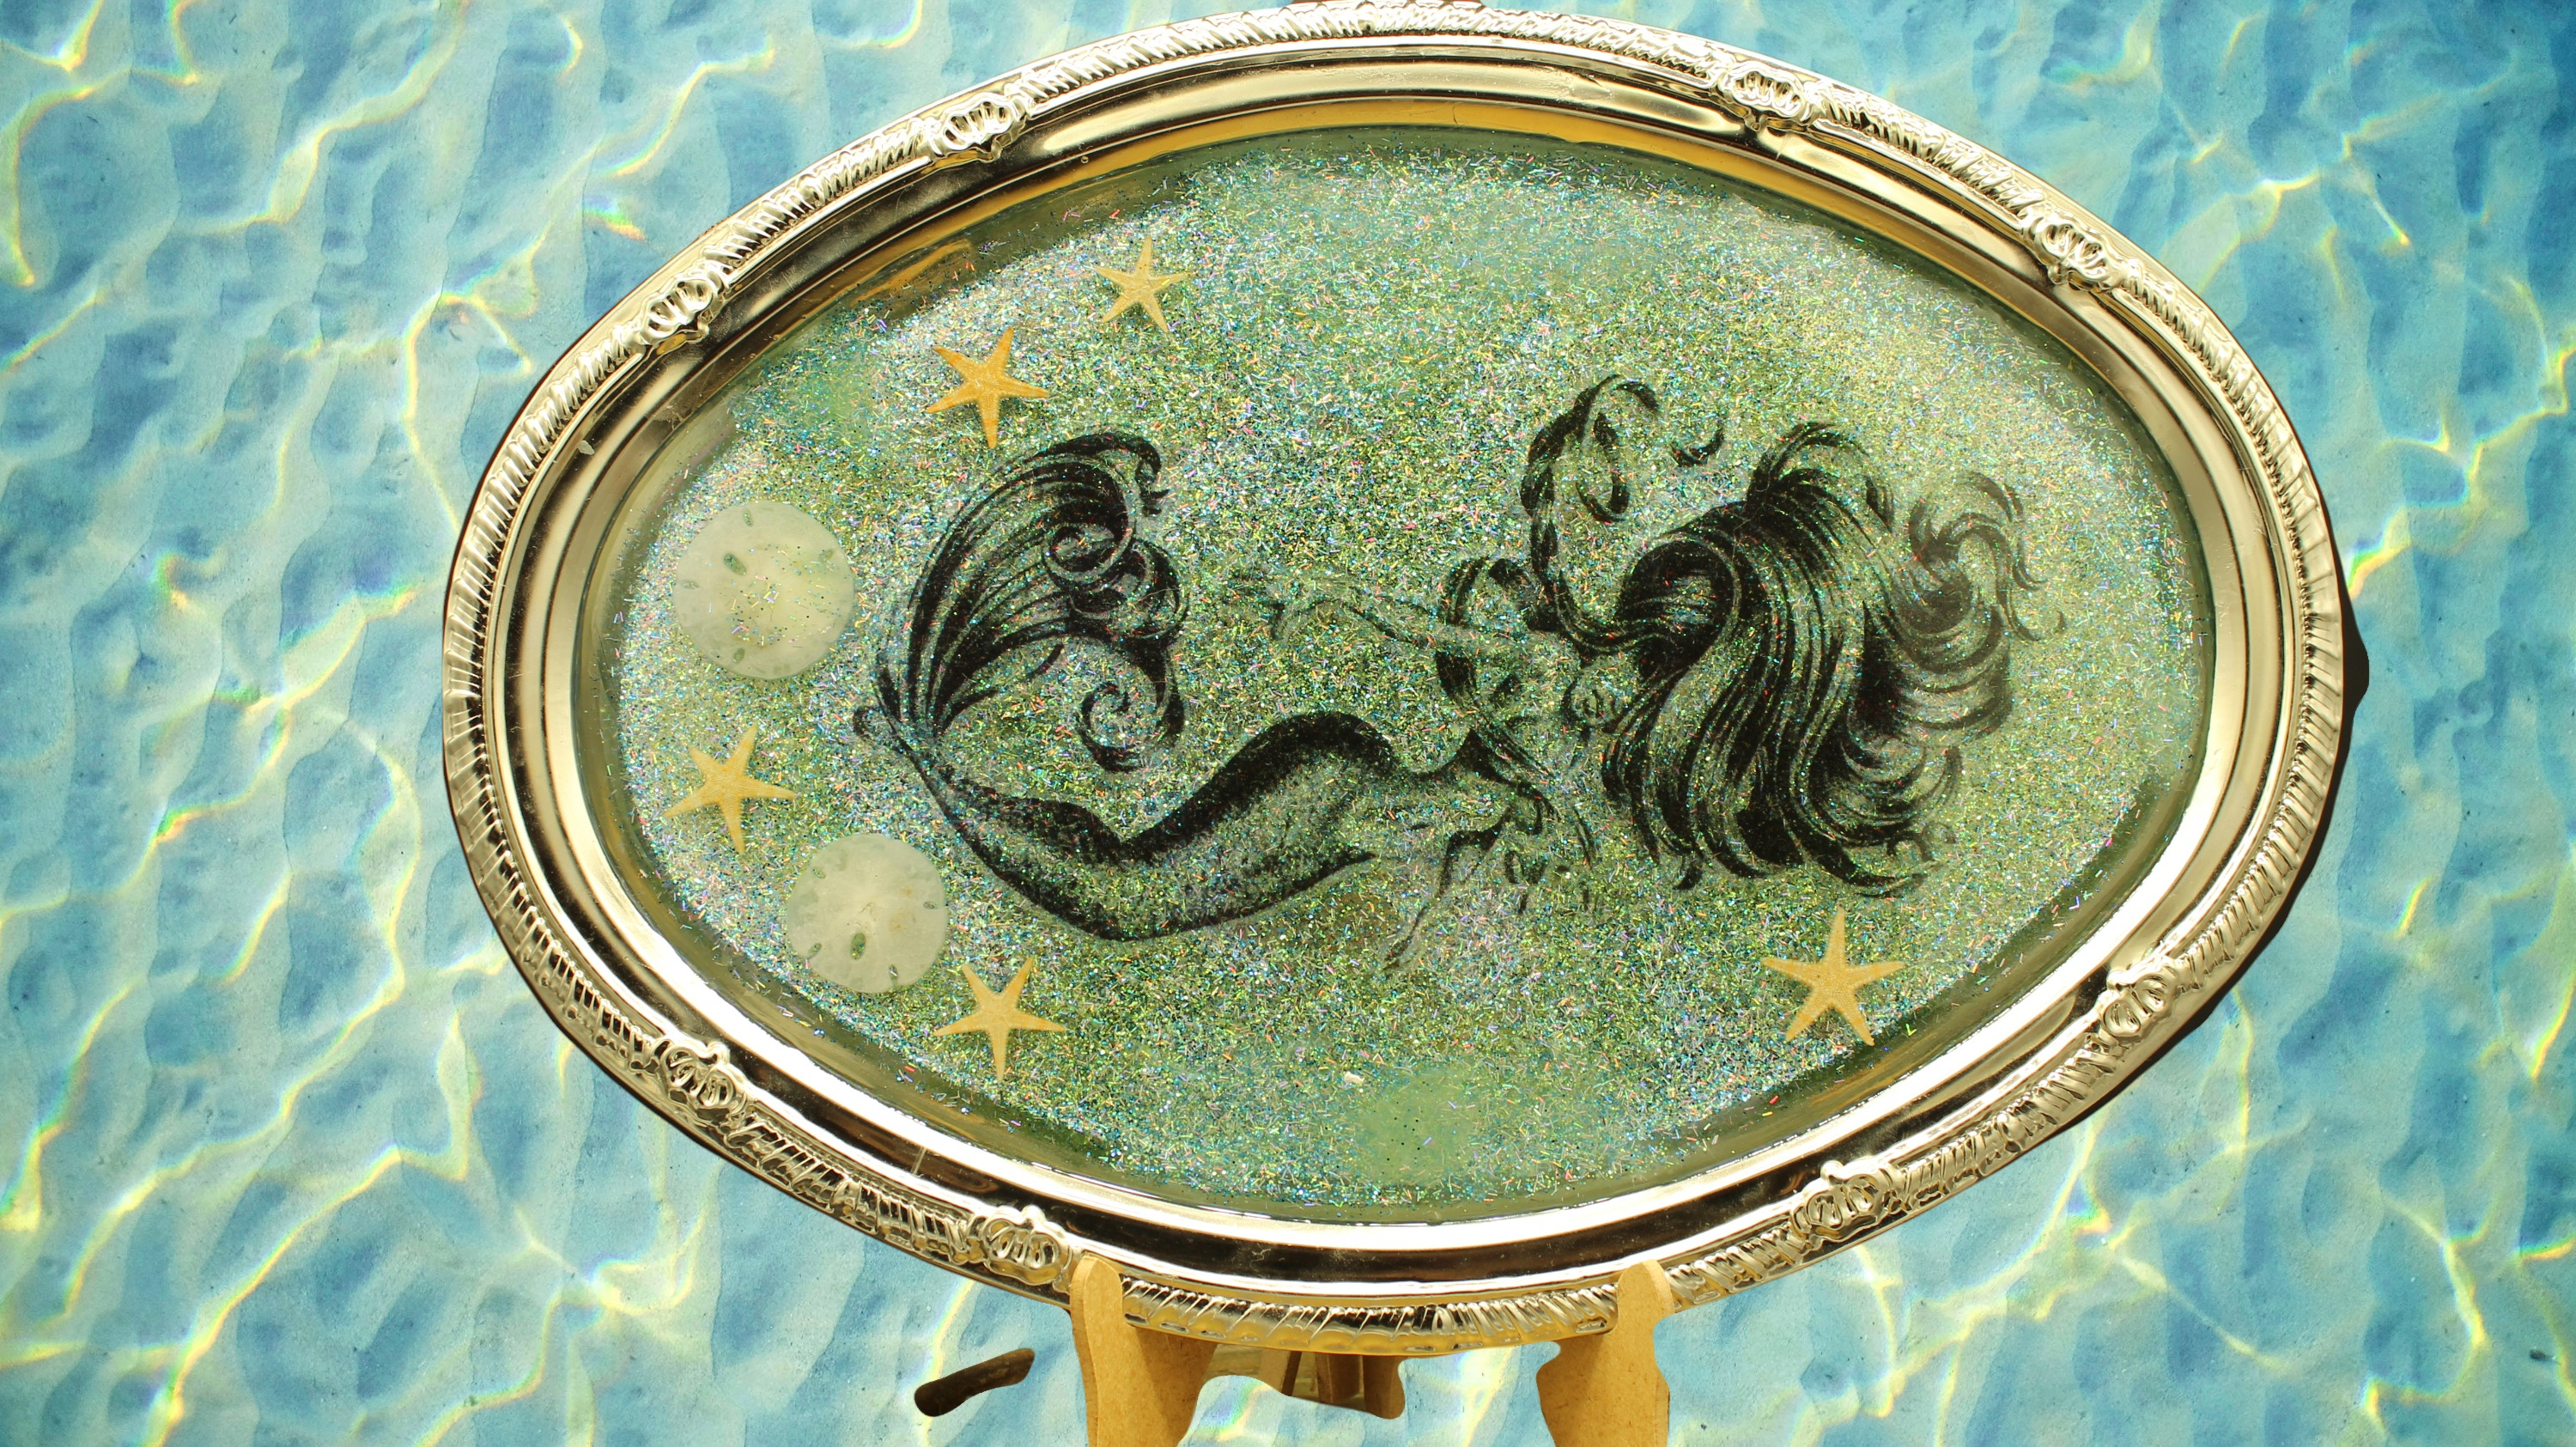 Mermaid tray